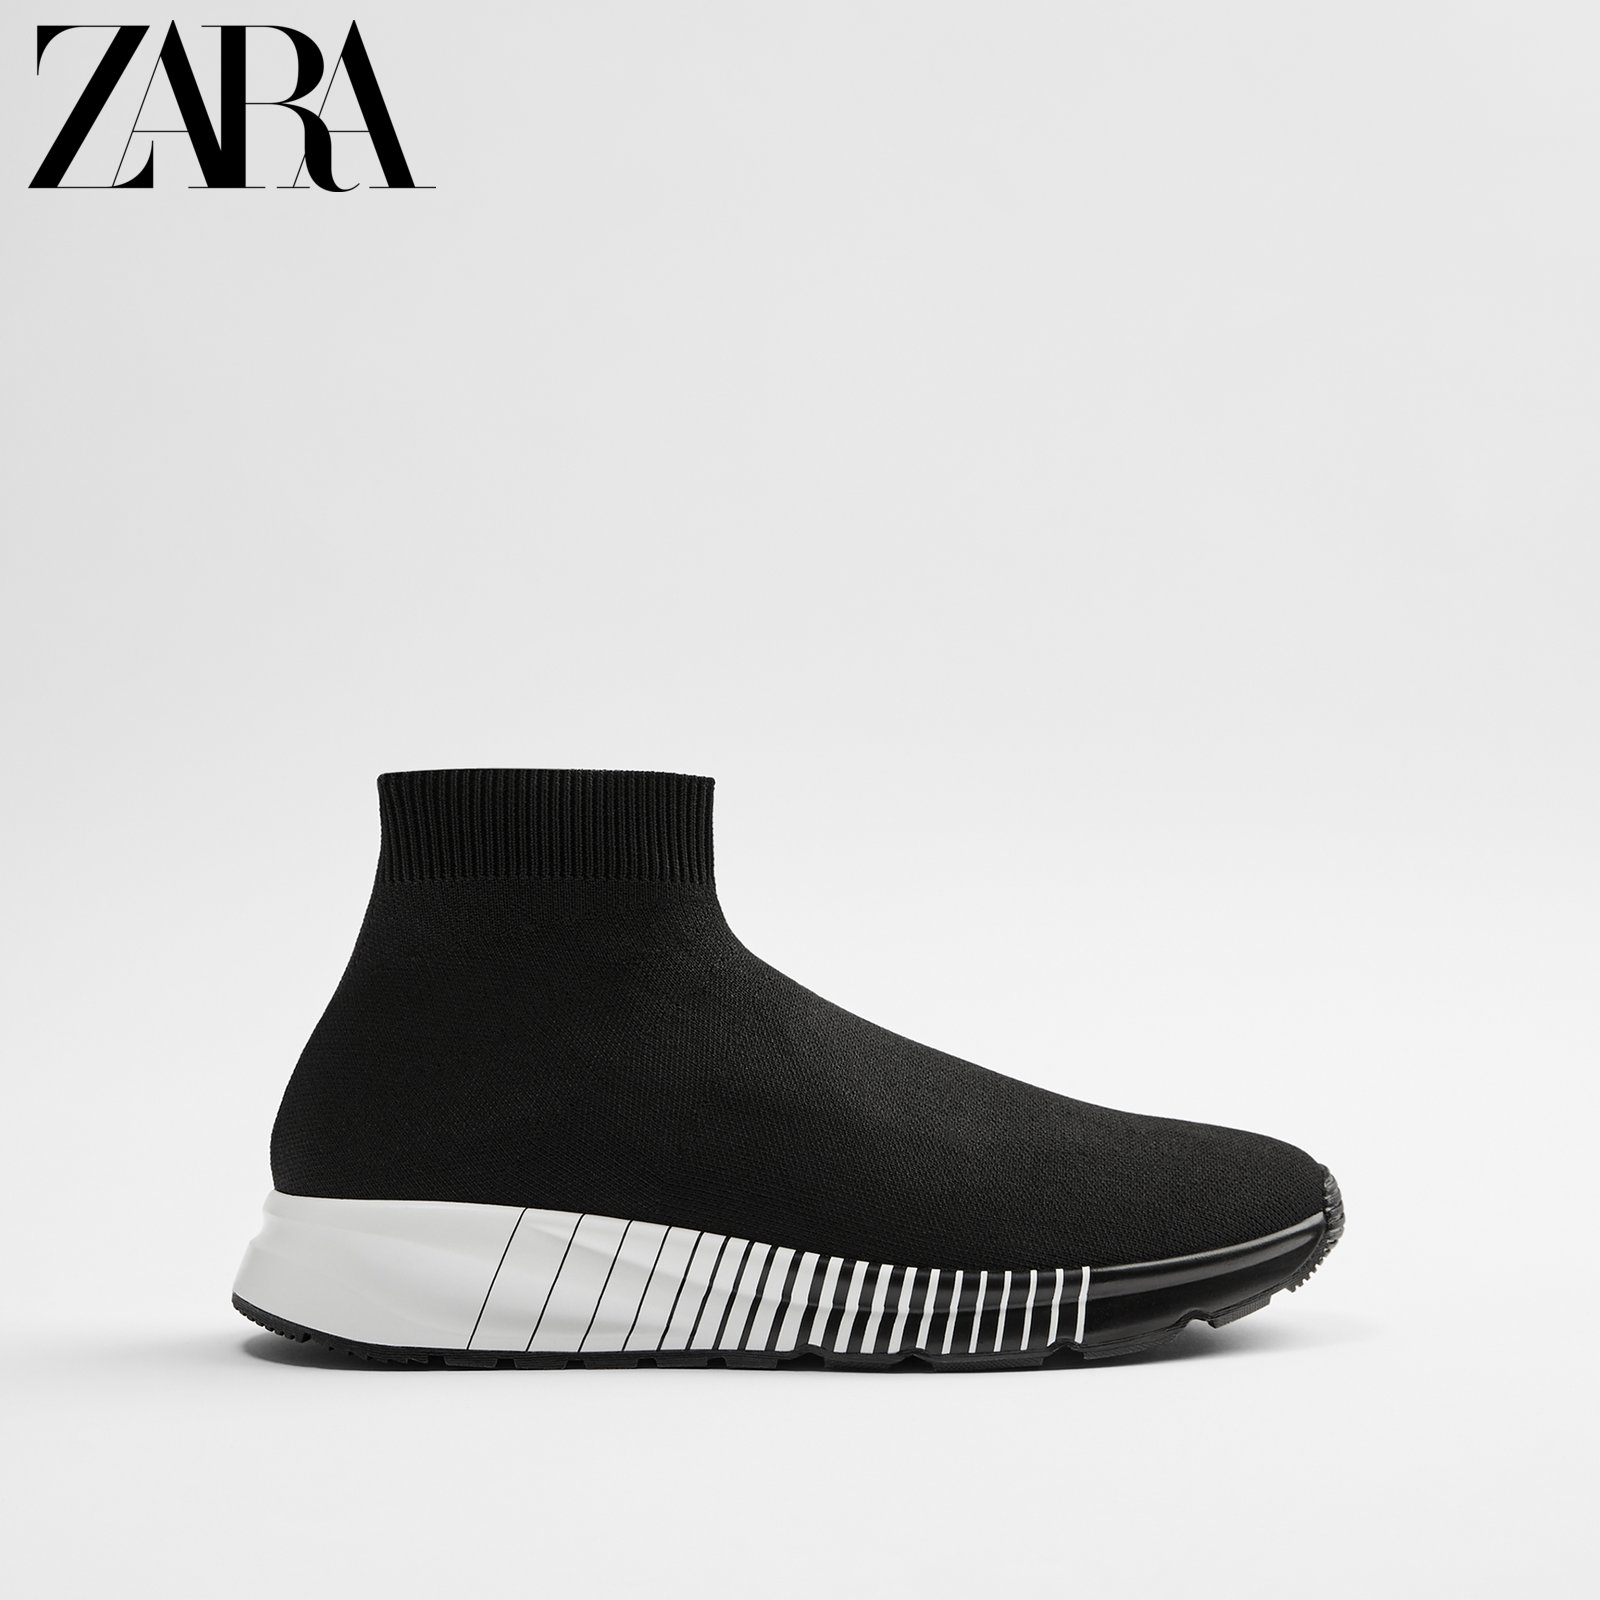 ZARA new men's shoes black high-top sock sports ankle boots 12101620040